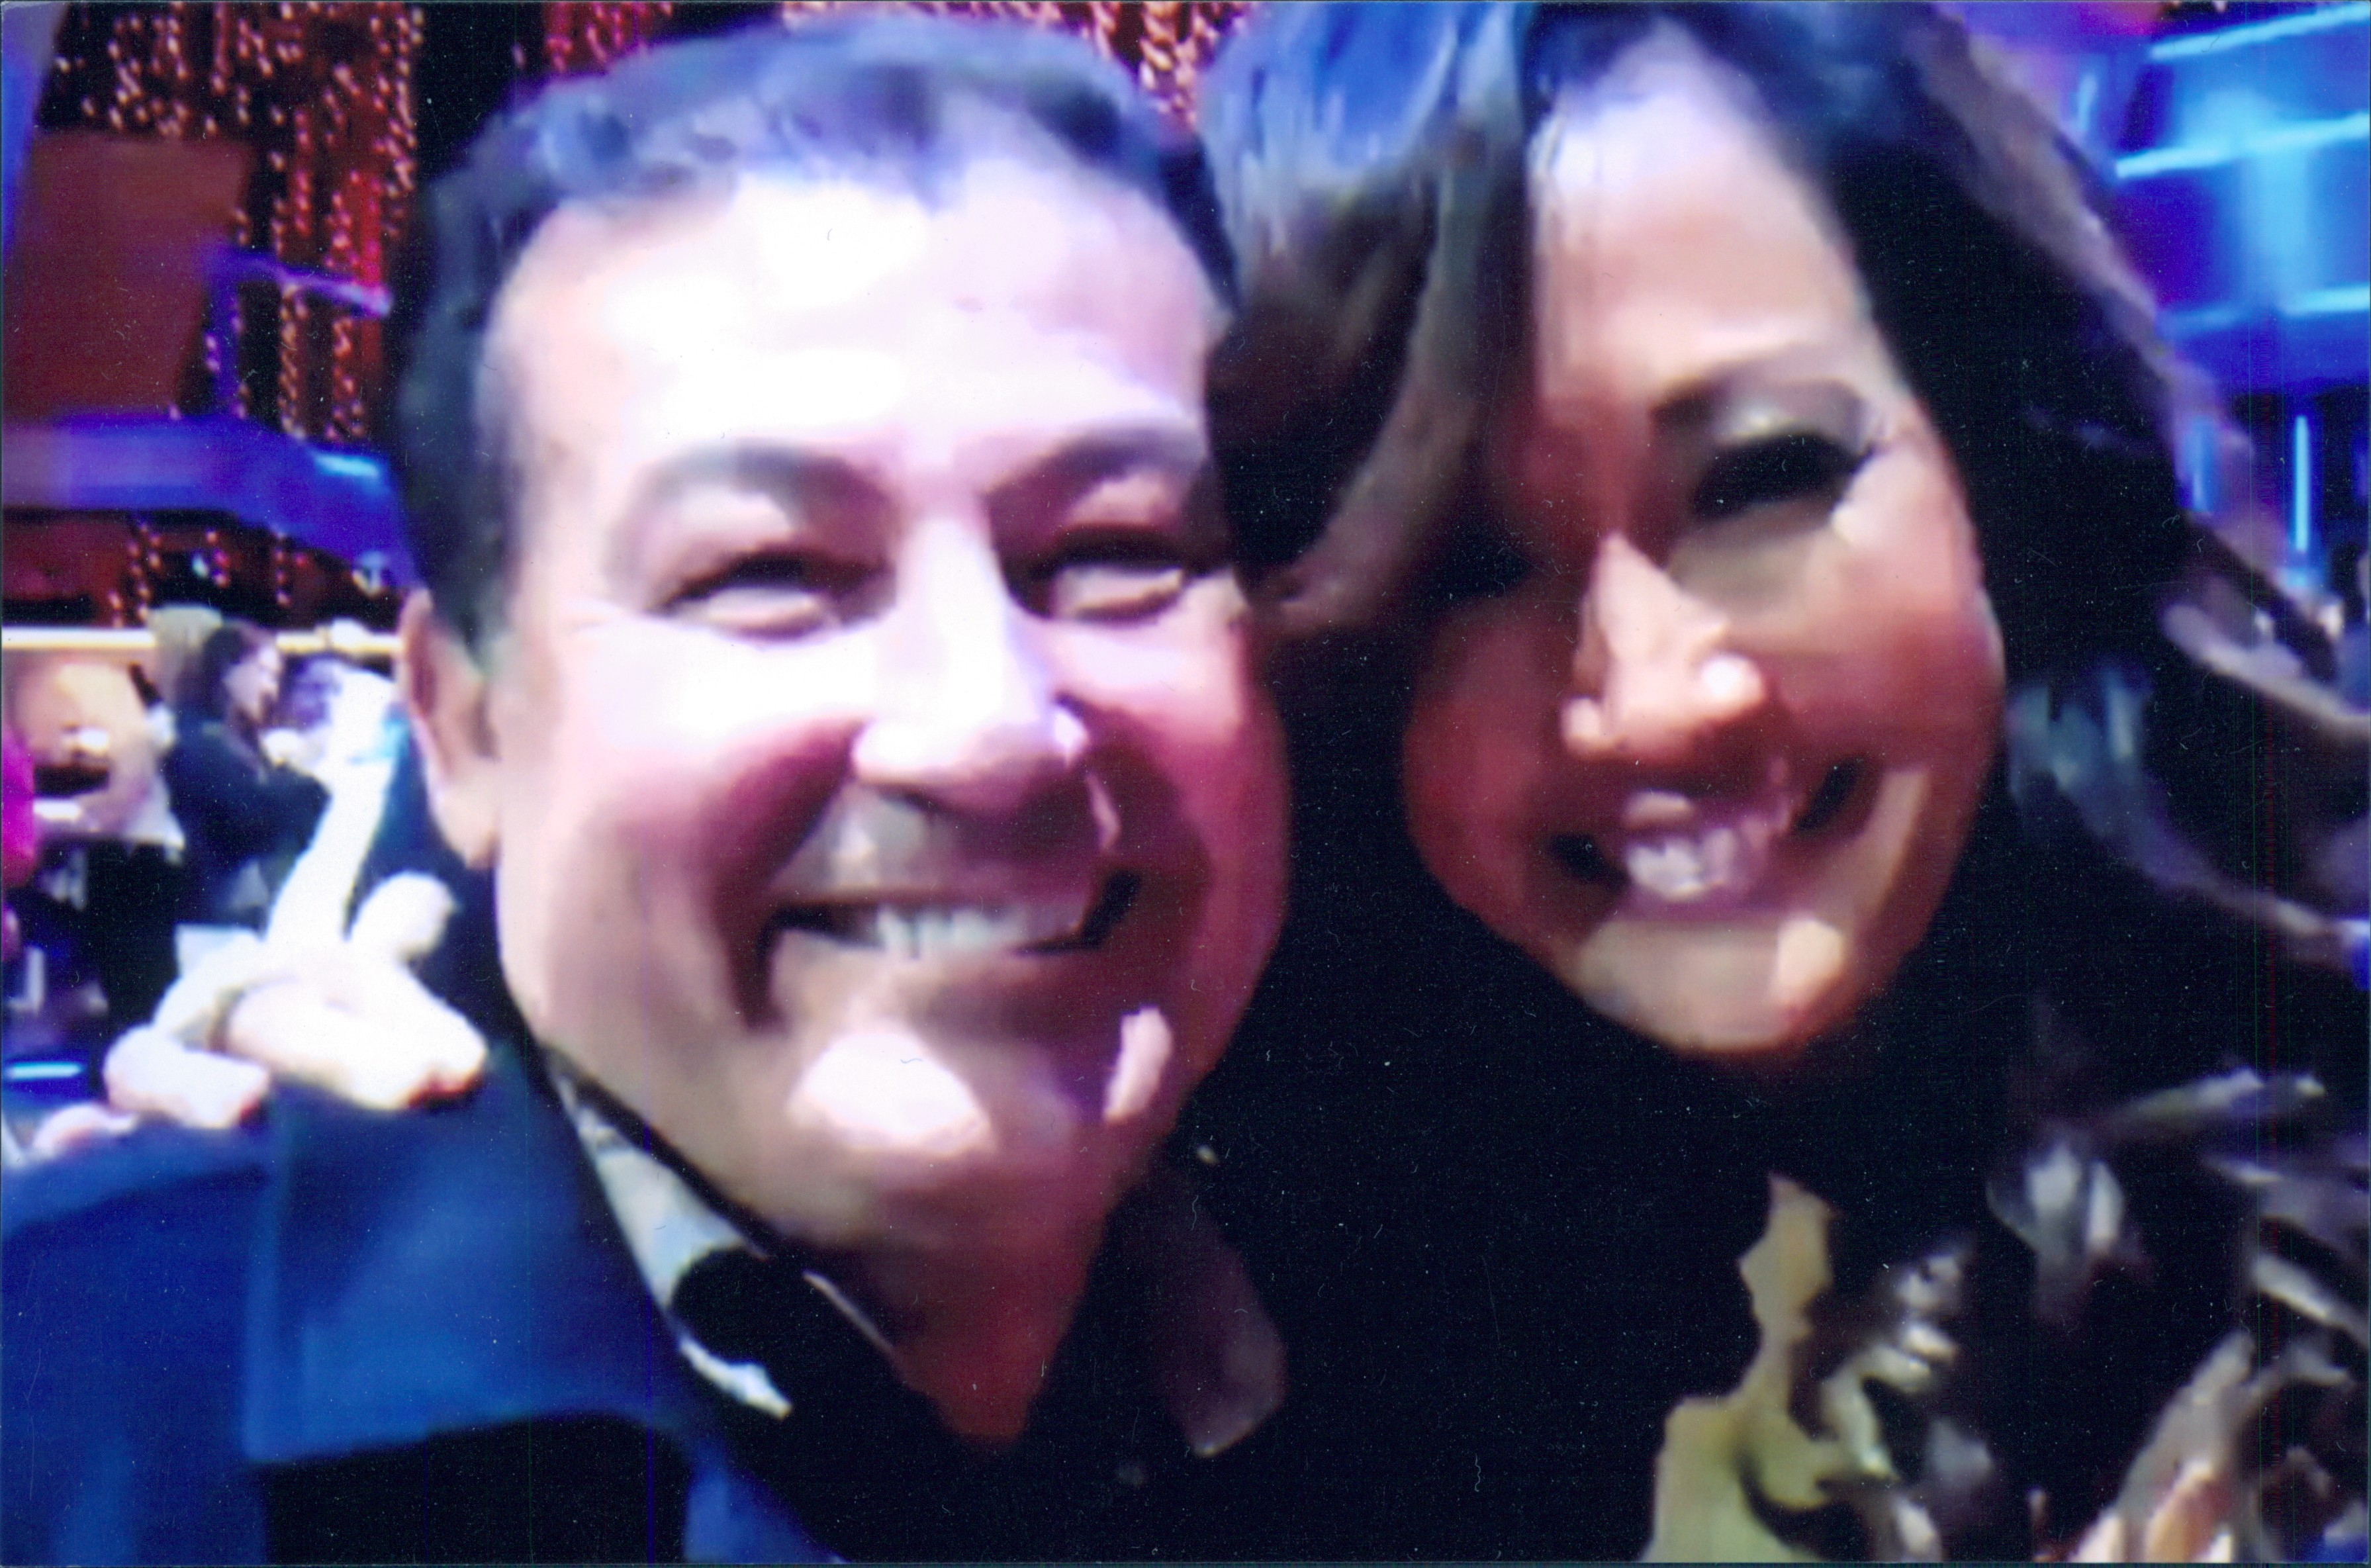 Stan Rodarte and Carrie Ann Inaba from Dancing with the Stars